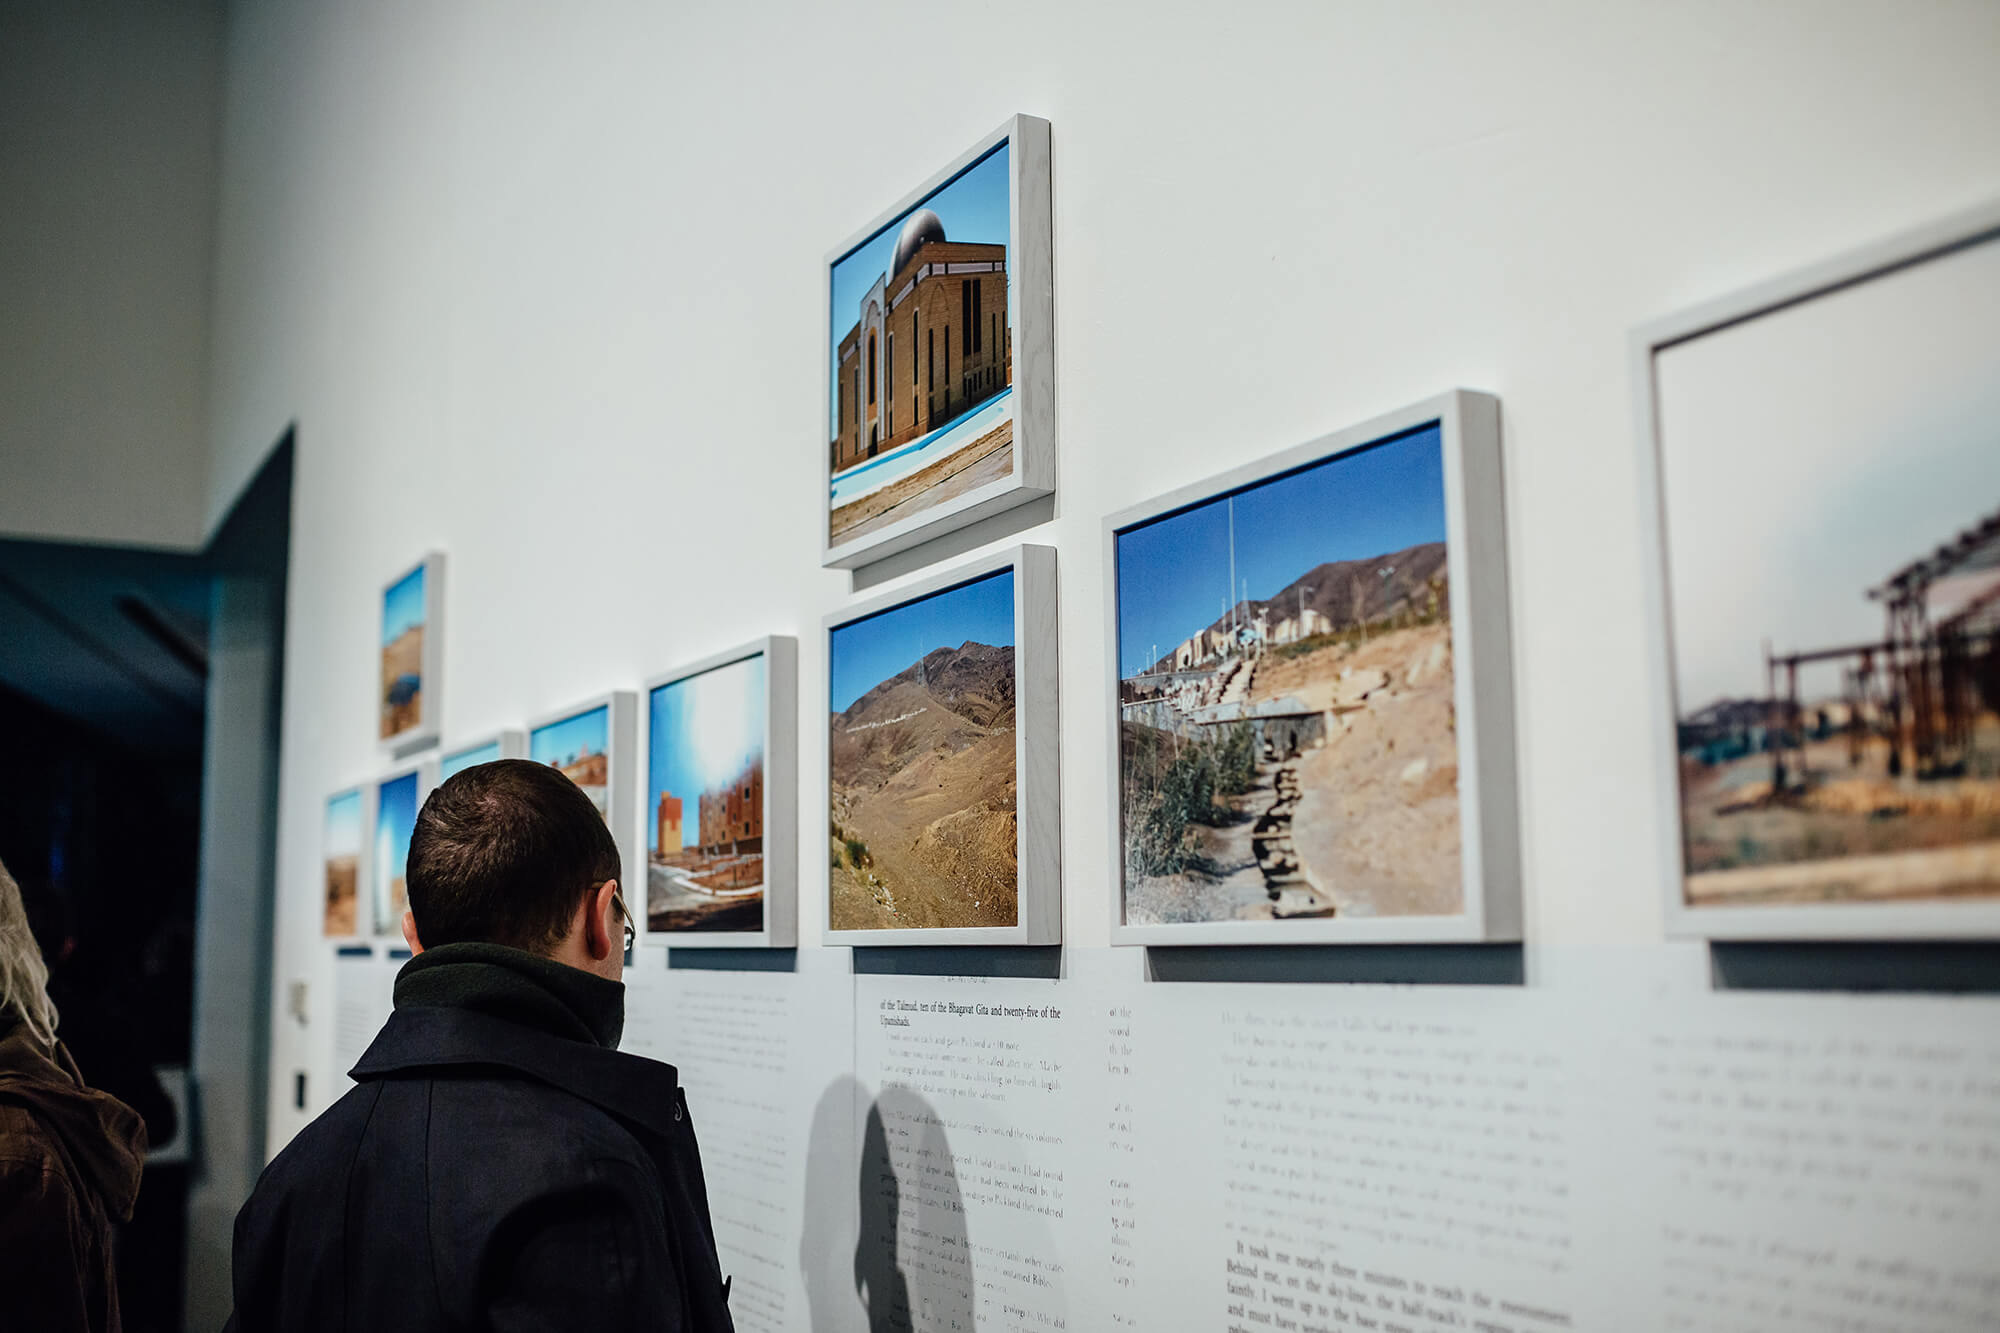 Images on show at Format17